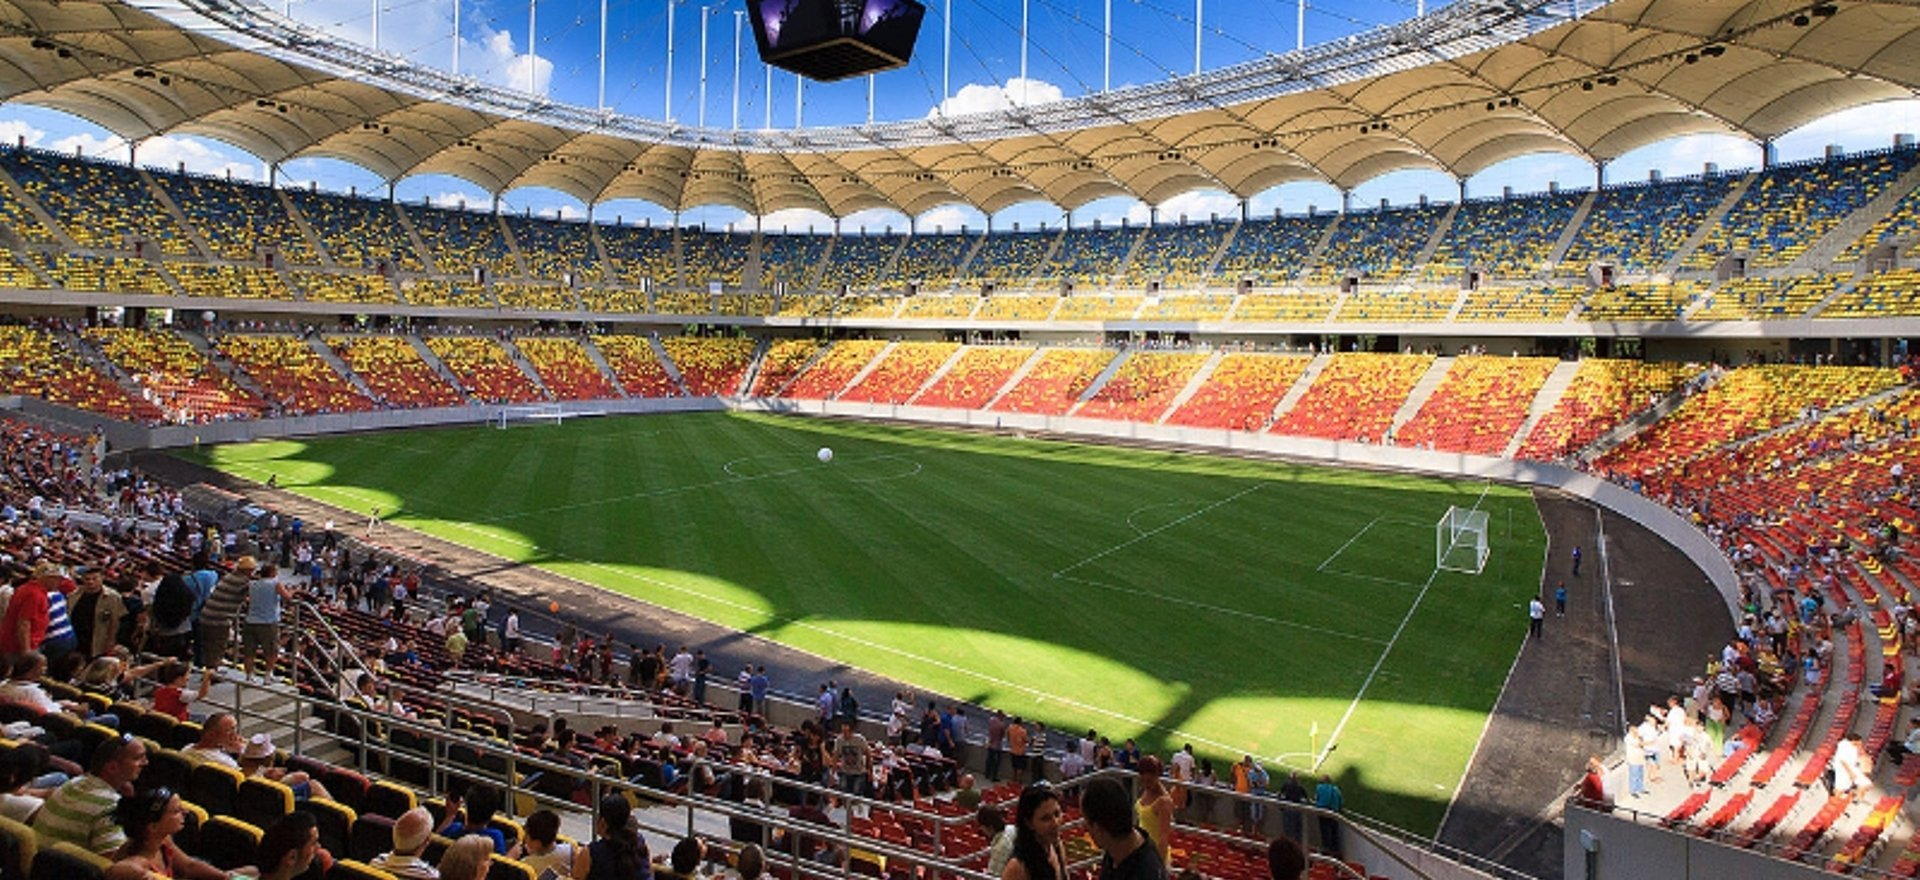 Romania sporting events national arena